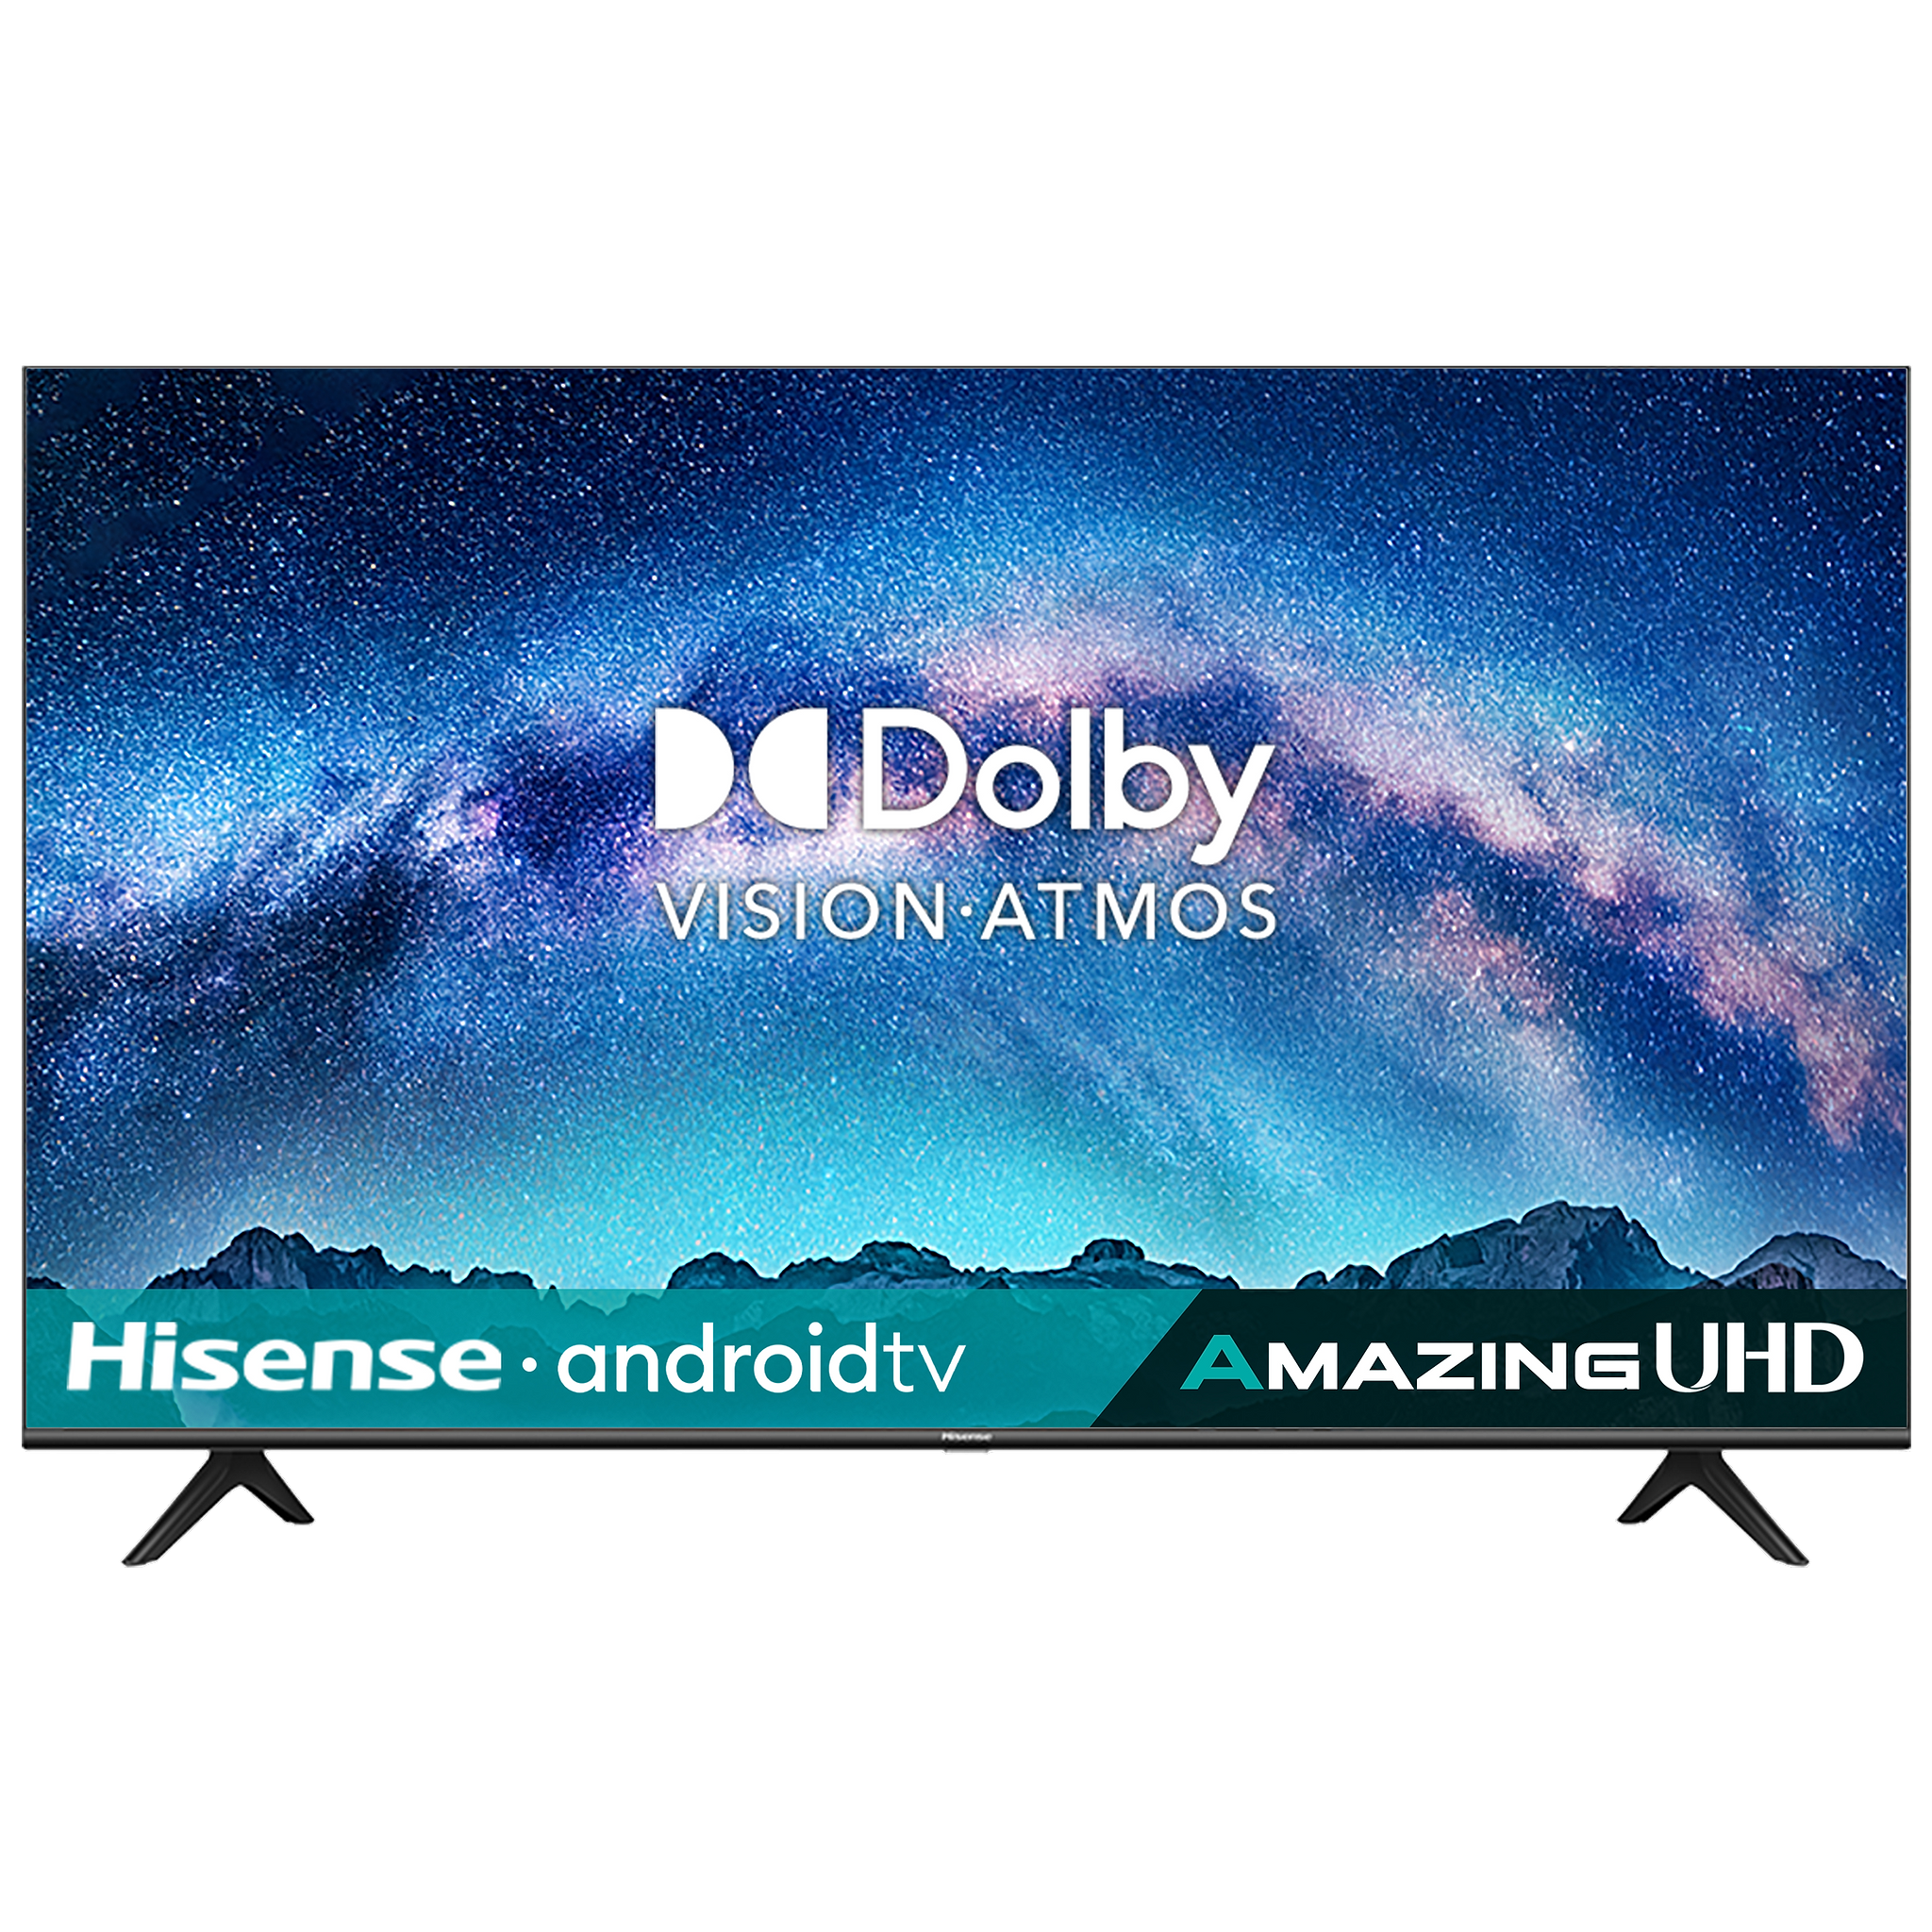 Hisense A71 Series 146cm (58 Inch) Ultra HD 4K LED Android Smart TV